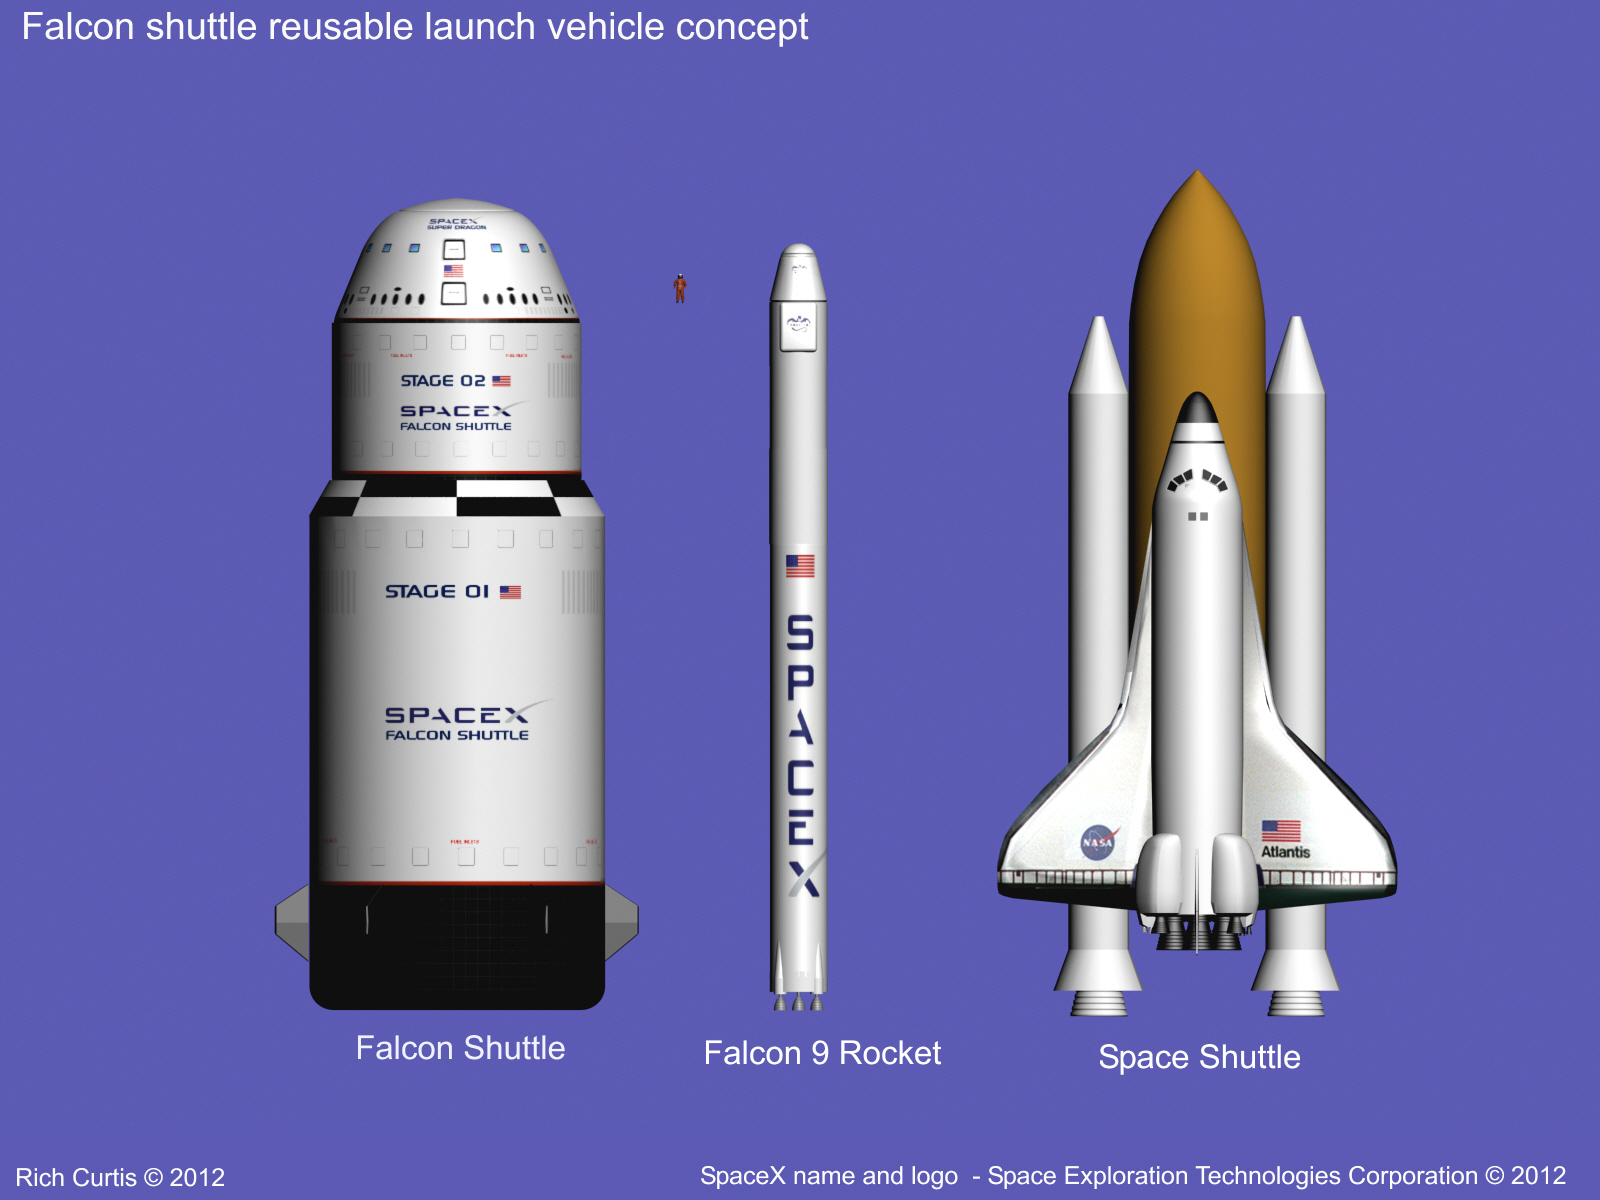 Rich Curtis Design The Falcon Shuttle Resuable Launch System